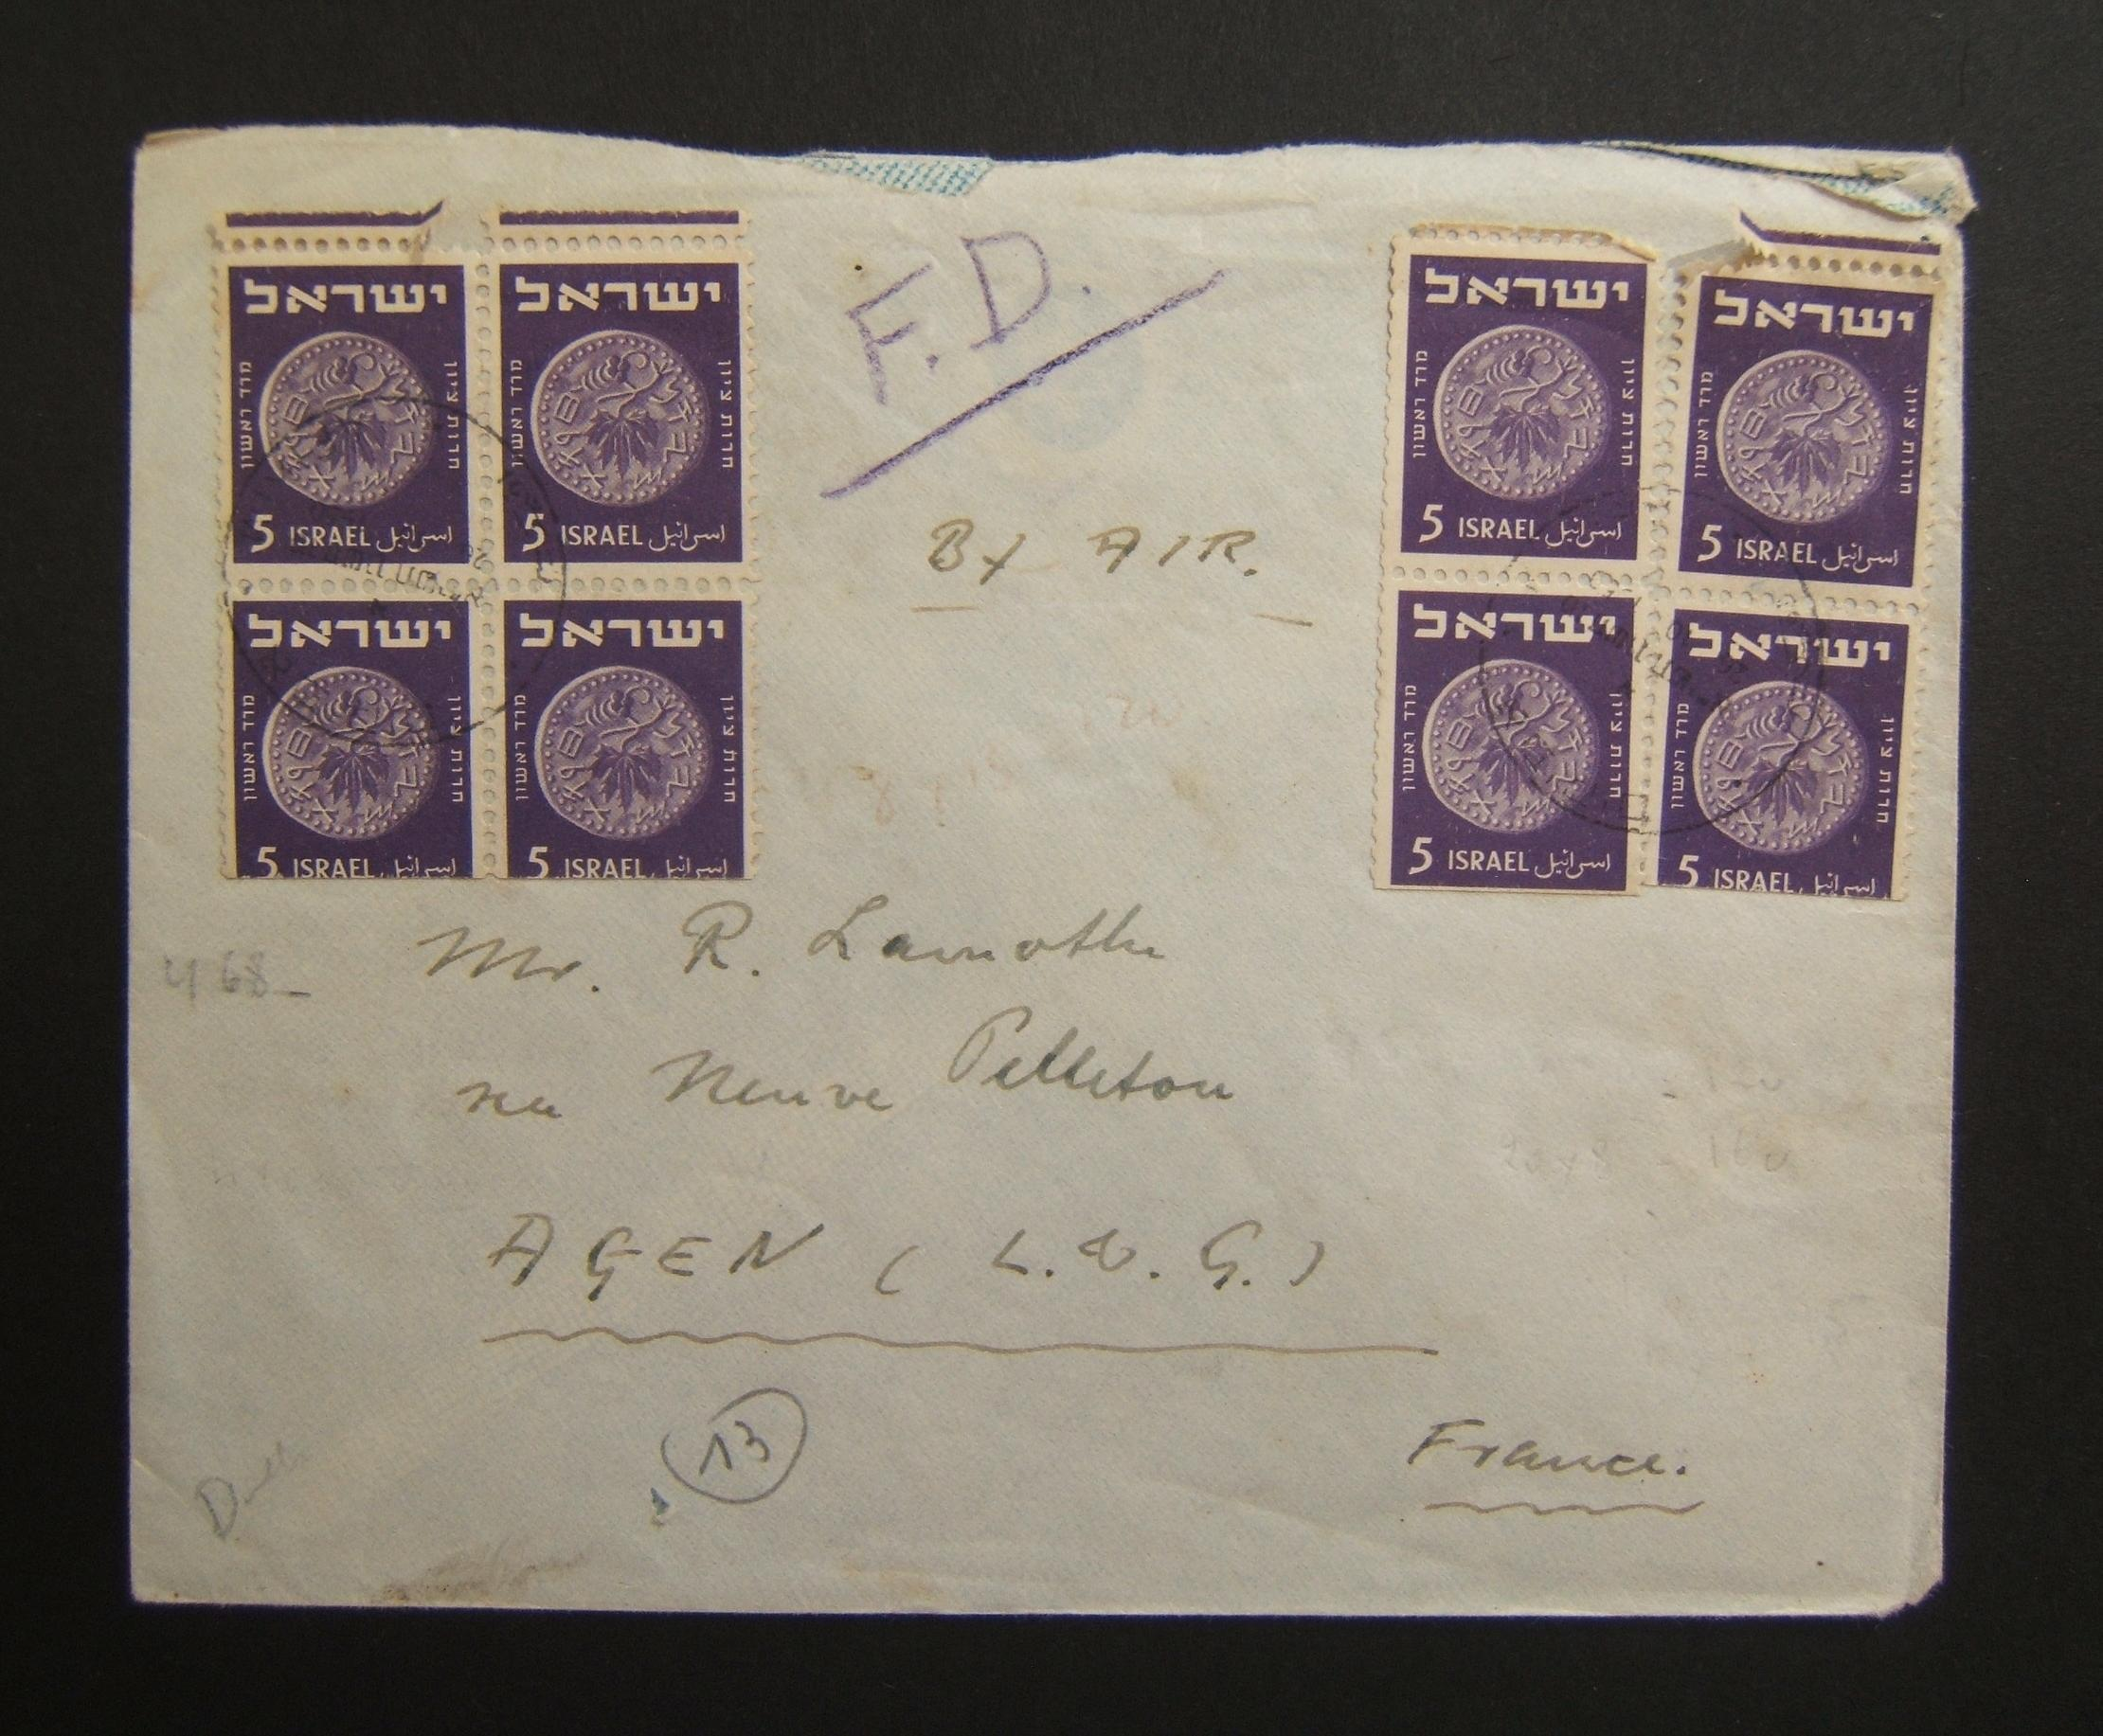 1950 2nd Coinage airmail: 26-10-1950 comm a/m cv ex AFIKIM to FRANCE franked 40pr per FA-2a period rate using 2 miscut booklet panes of 5pr (Ba5) ted by 2 full strikes of local pmk